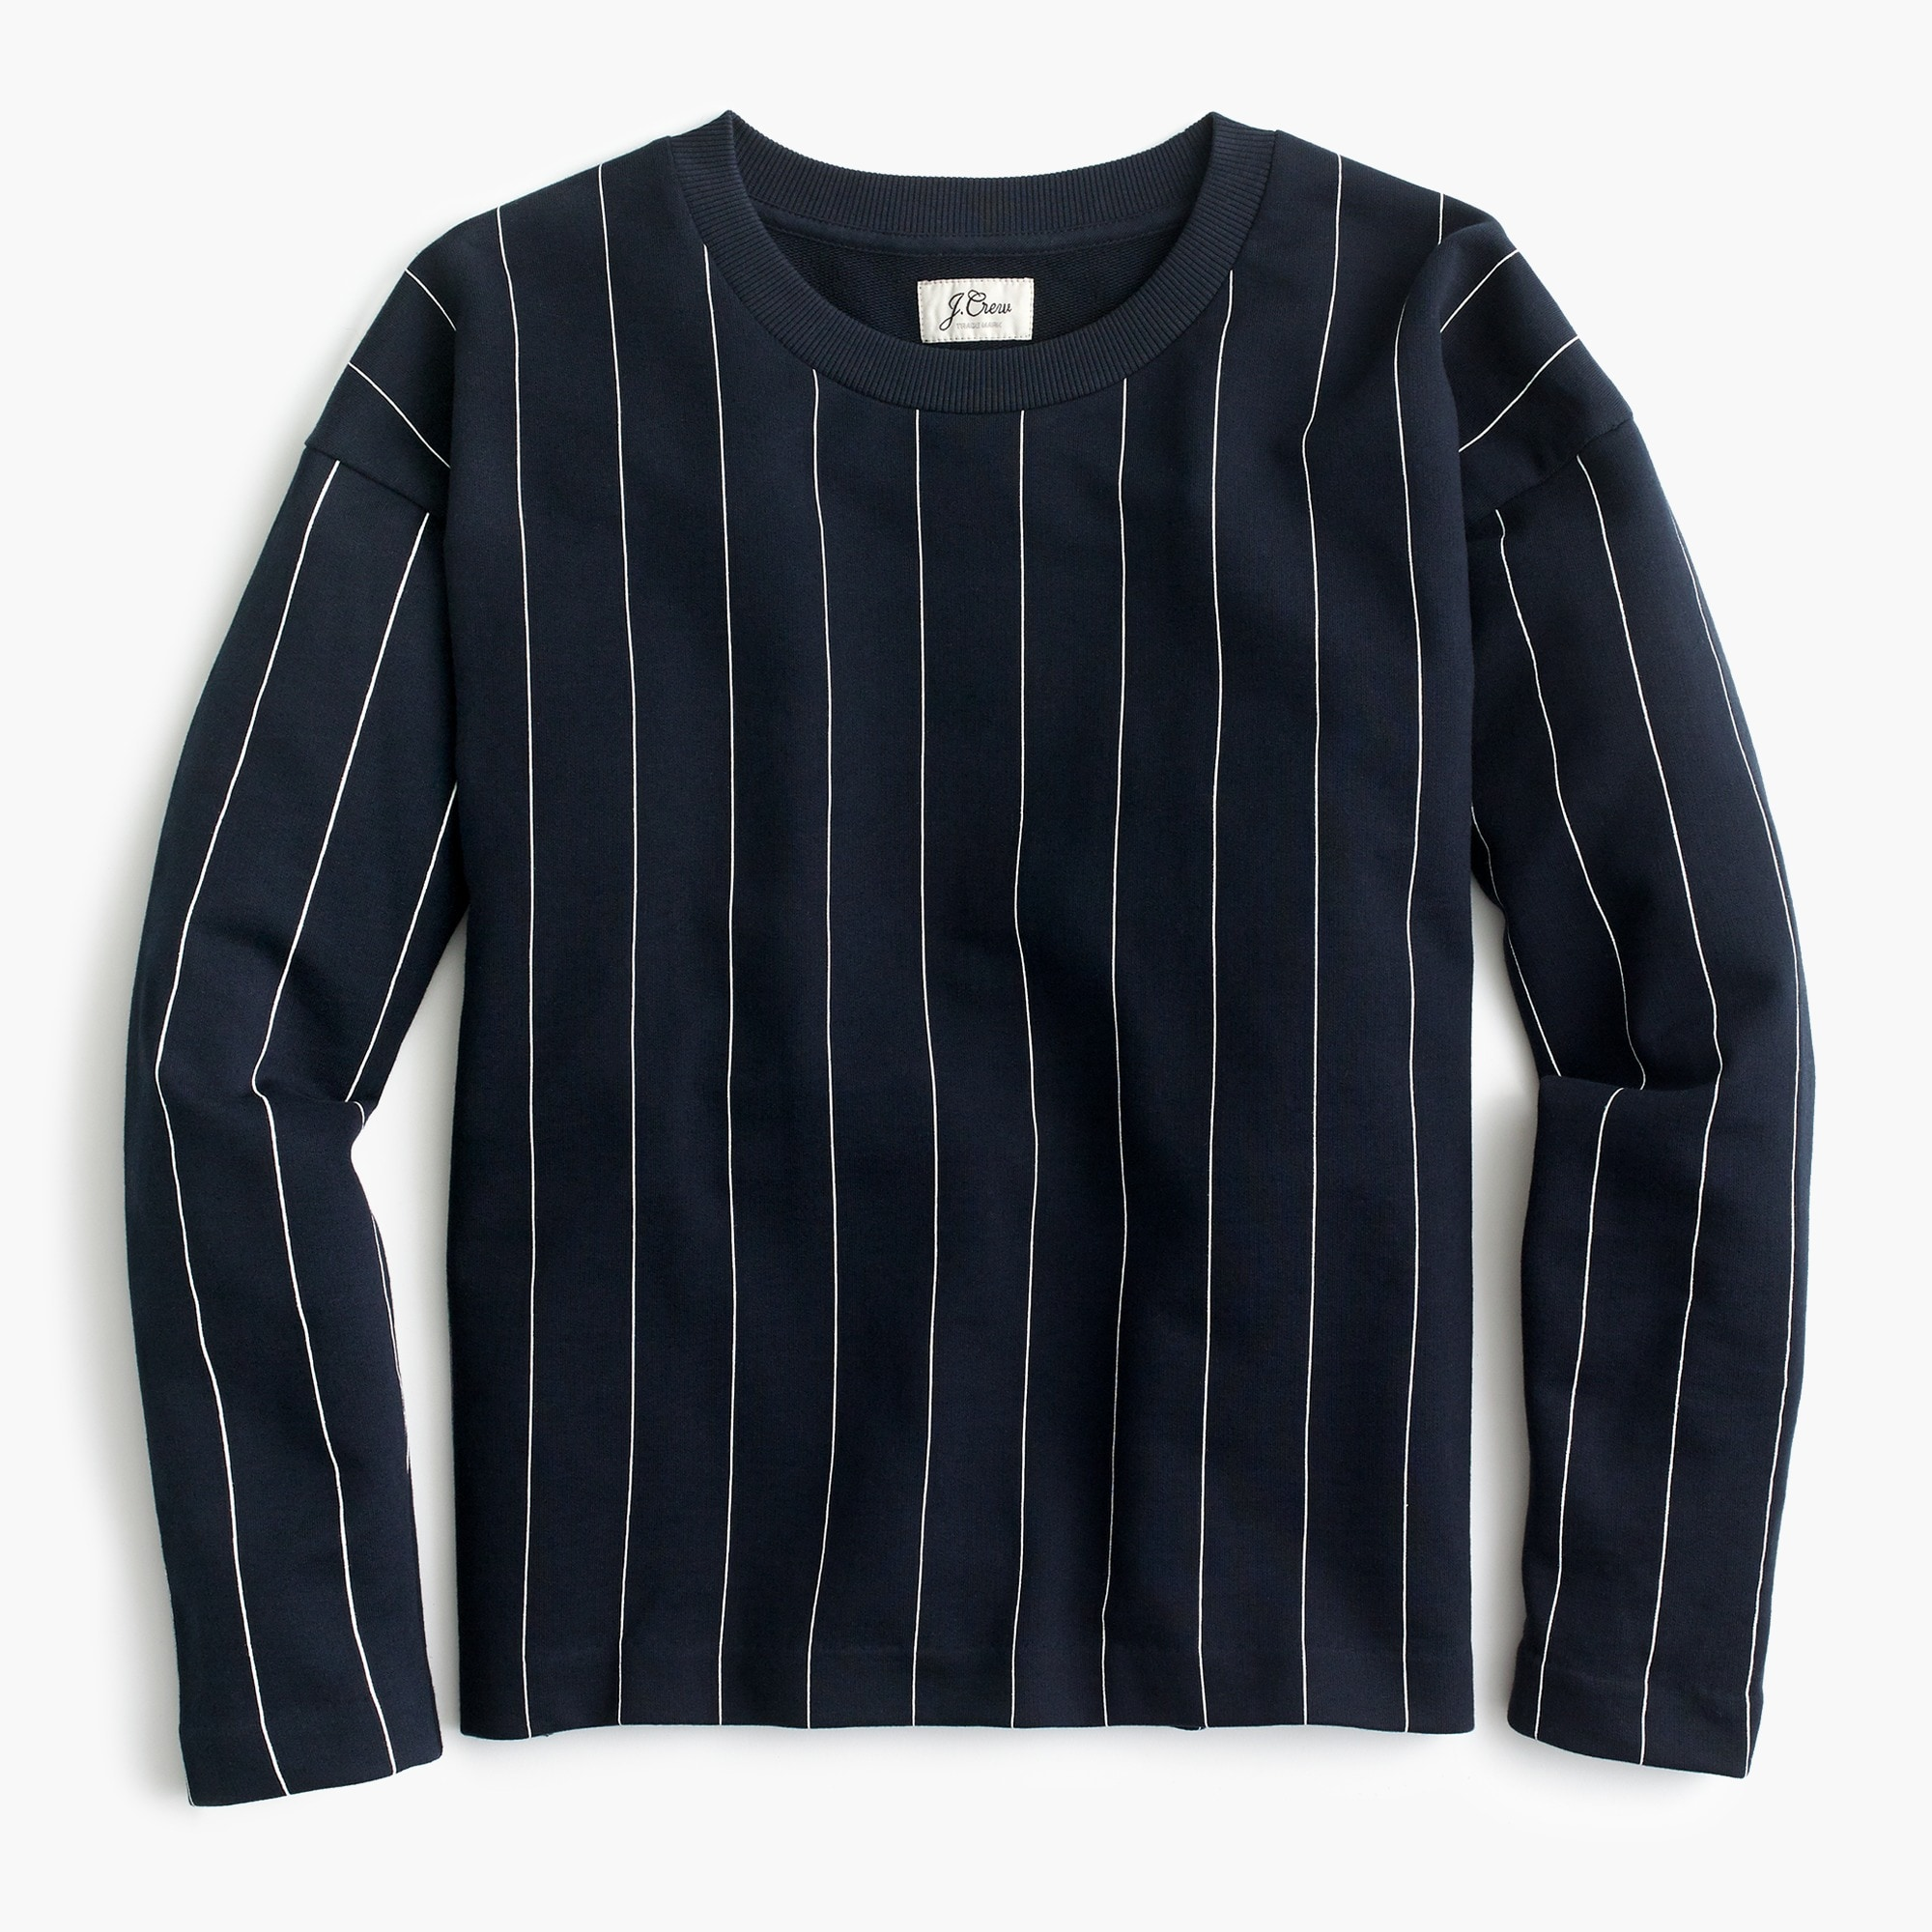 Image 2 for Crewneck sweatshirt in pinstripe